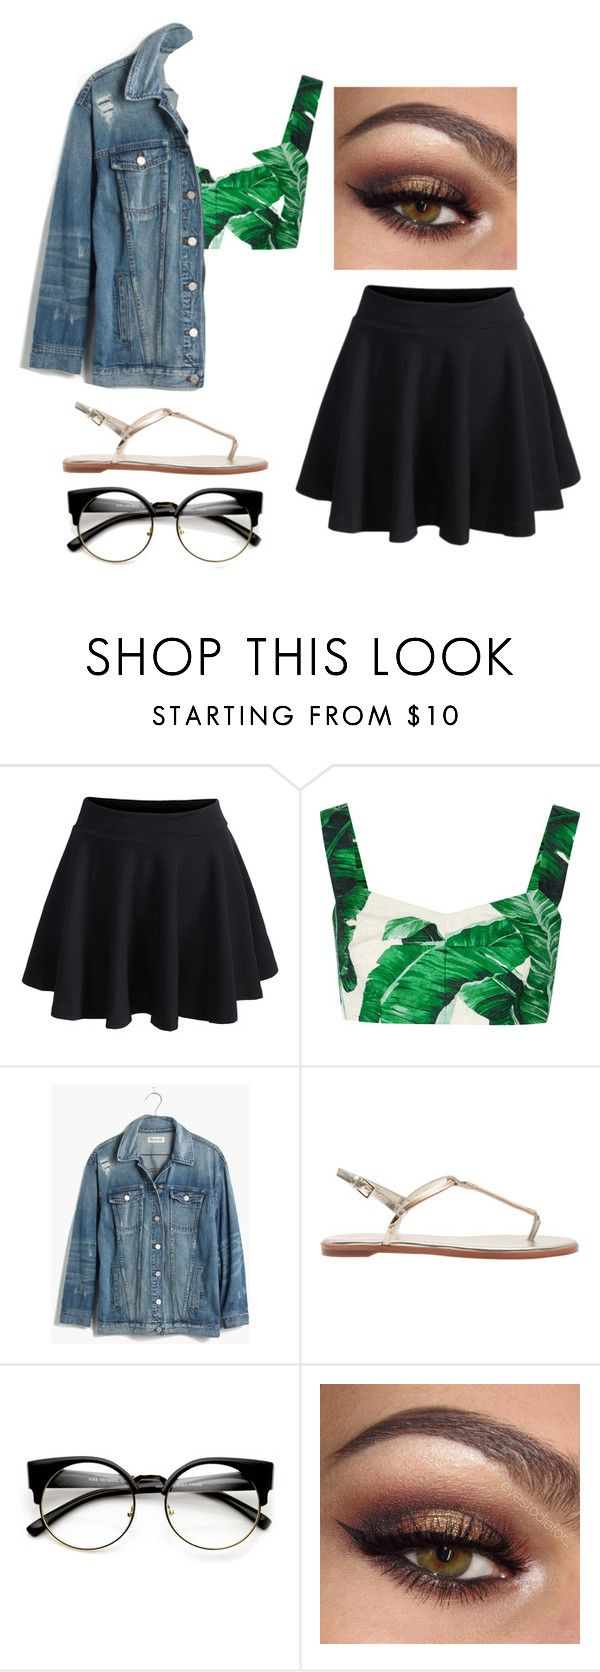 """Outfit #24"" by unicornicamitha on Polyvore featuring WithChic, Dolce&Gabbana and Madewell"